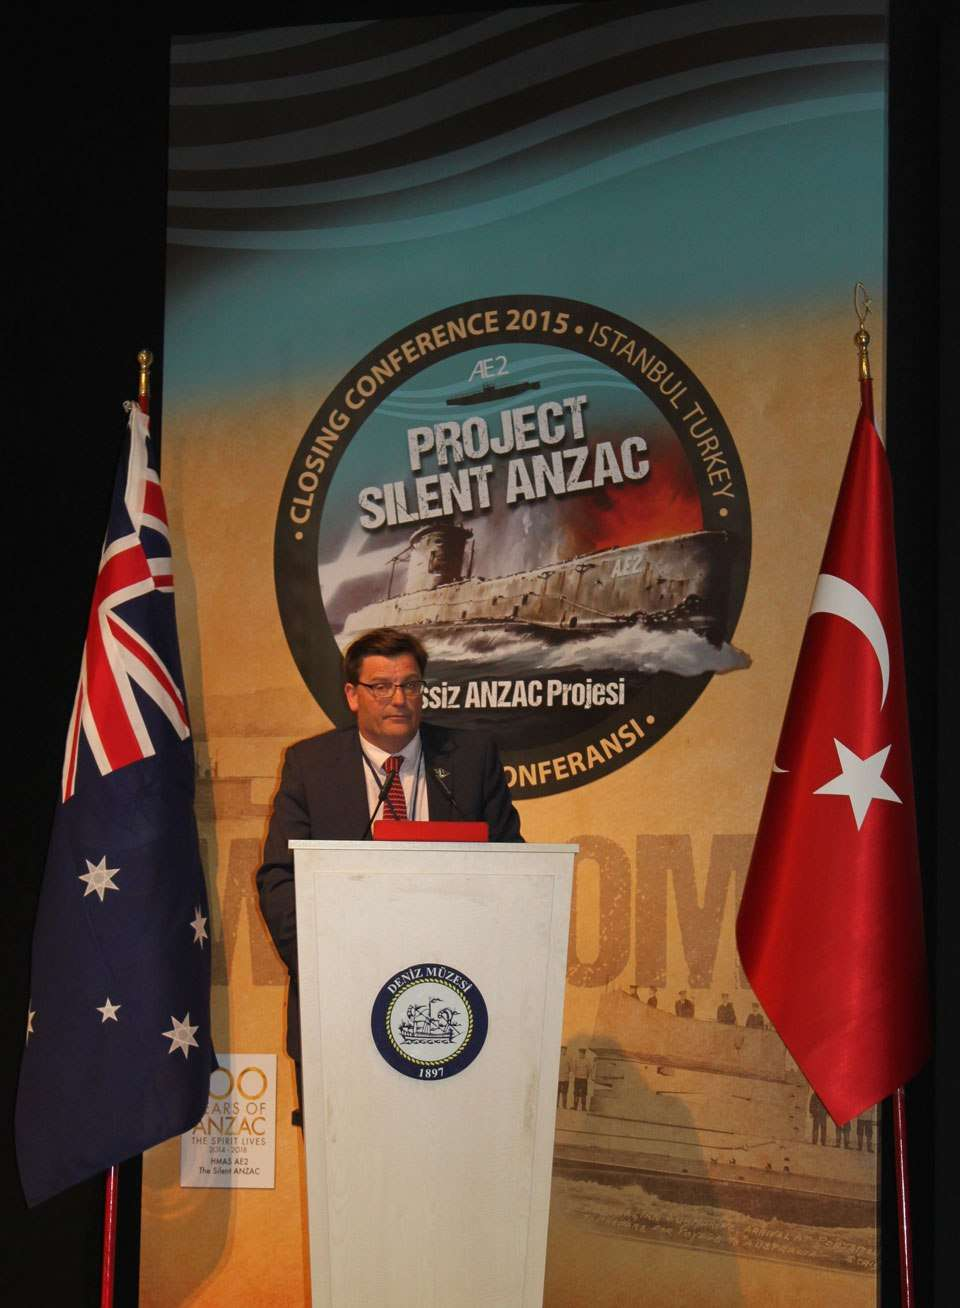 ANMM Director Kevin Sumption presents a paper at the AE2 Closing Conference in Istanbul, 20 April 2015.